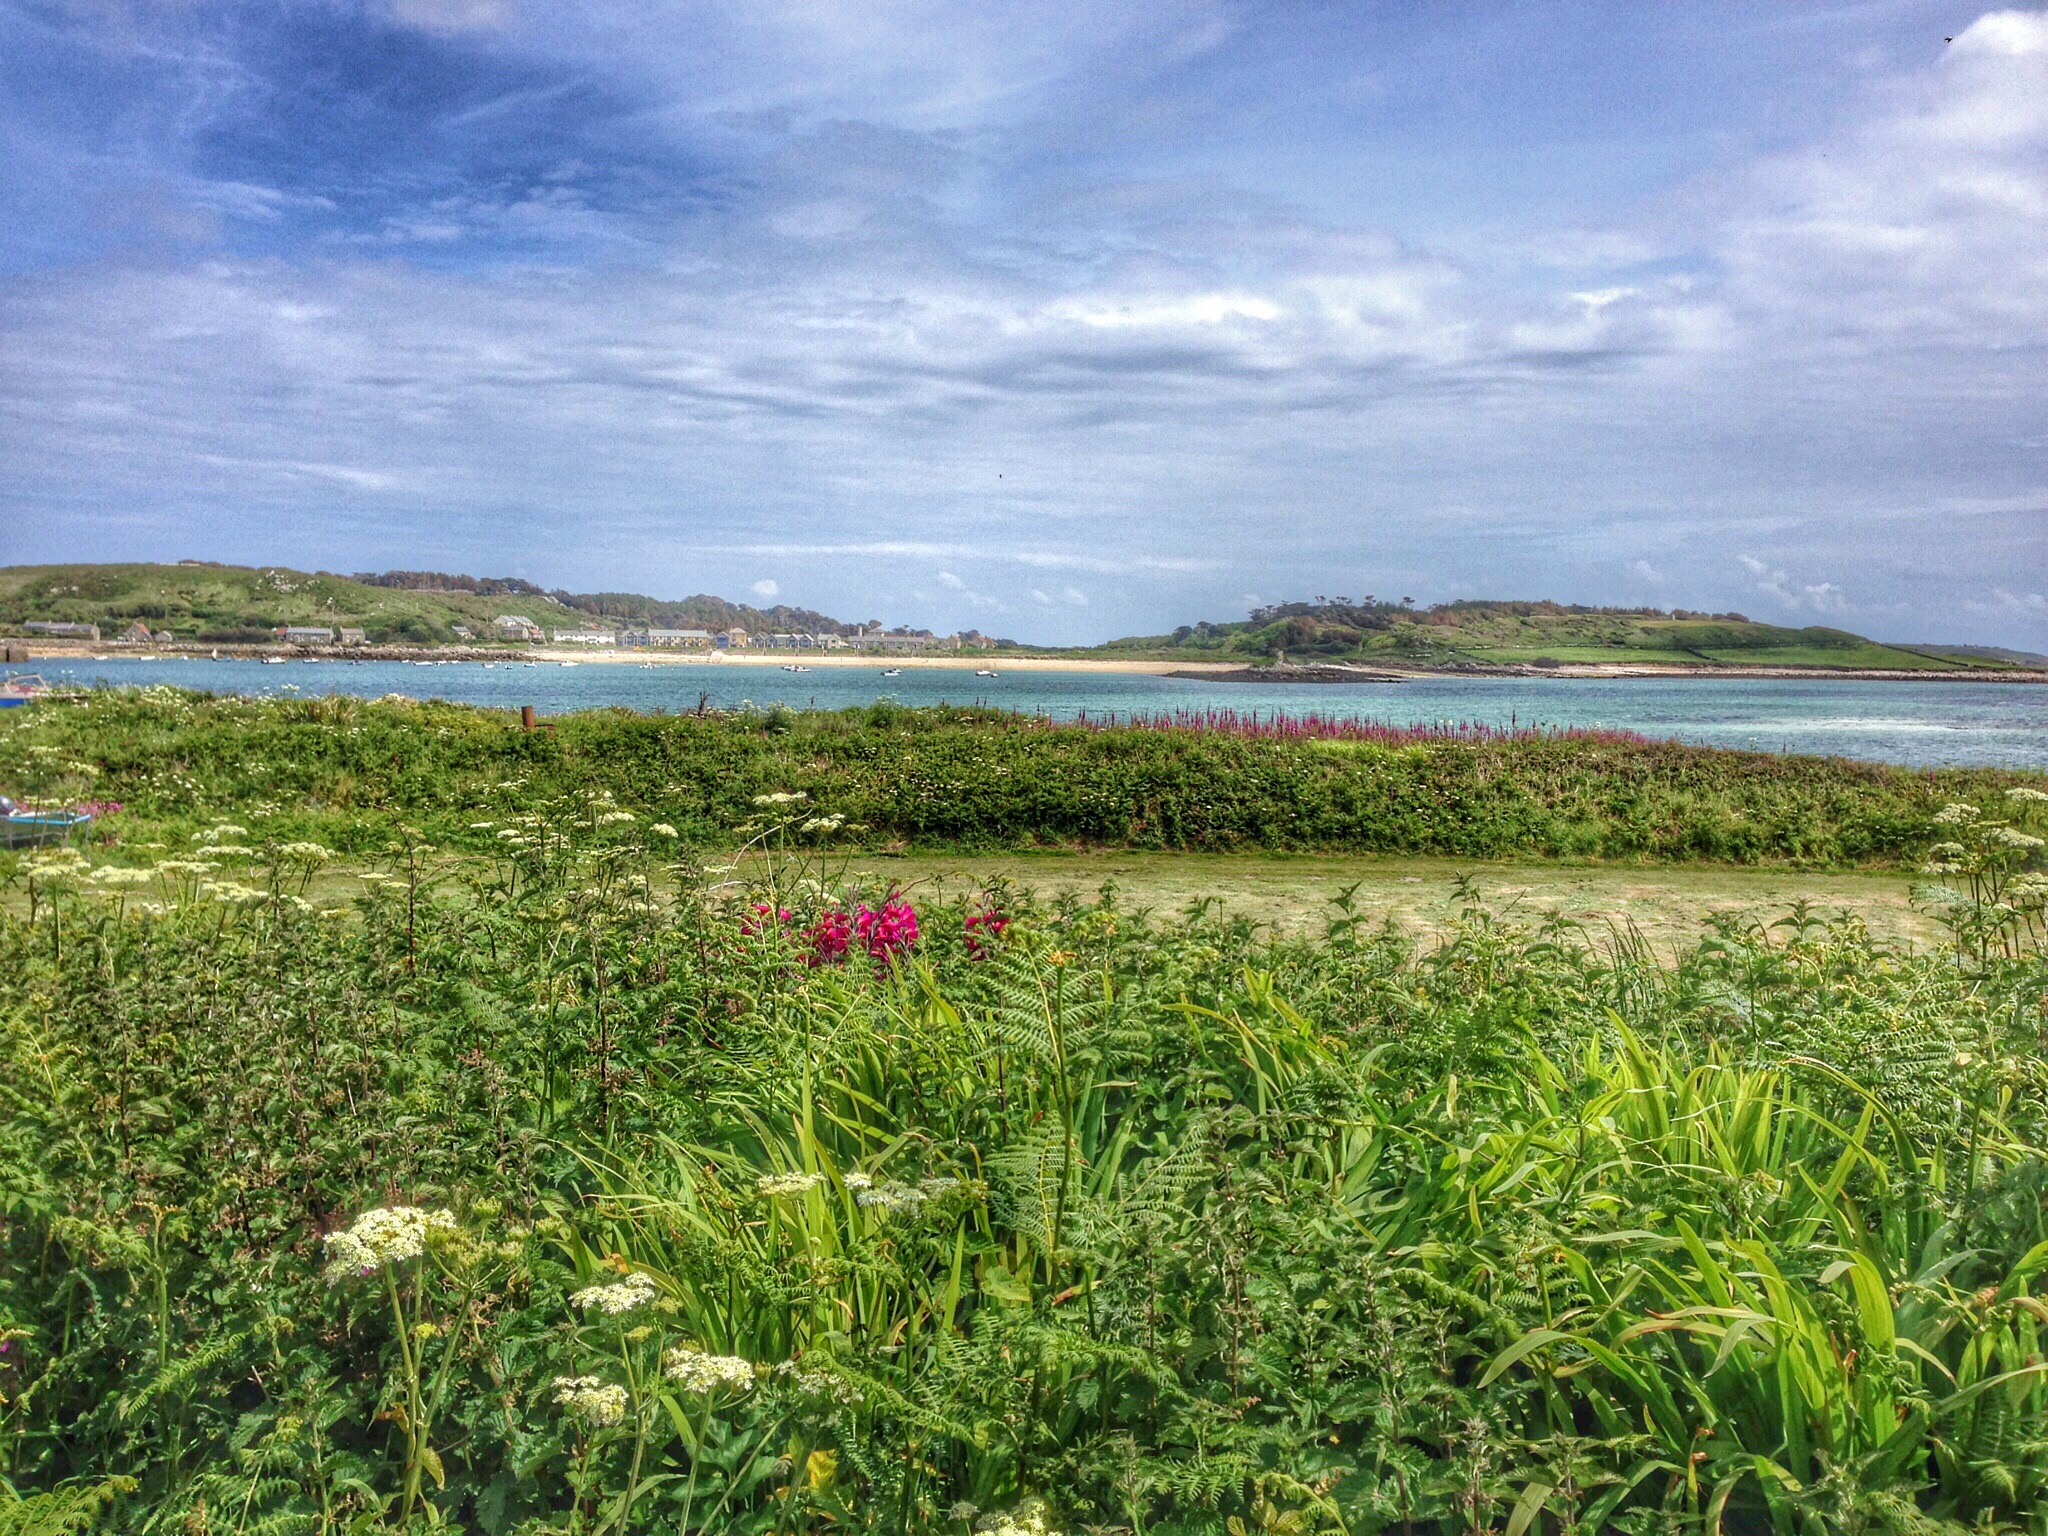 Isles of Scilly landscape